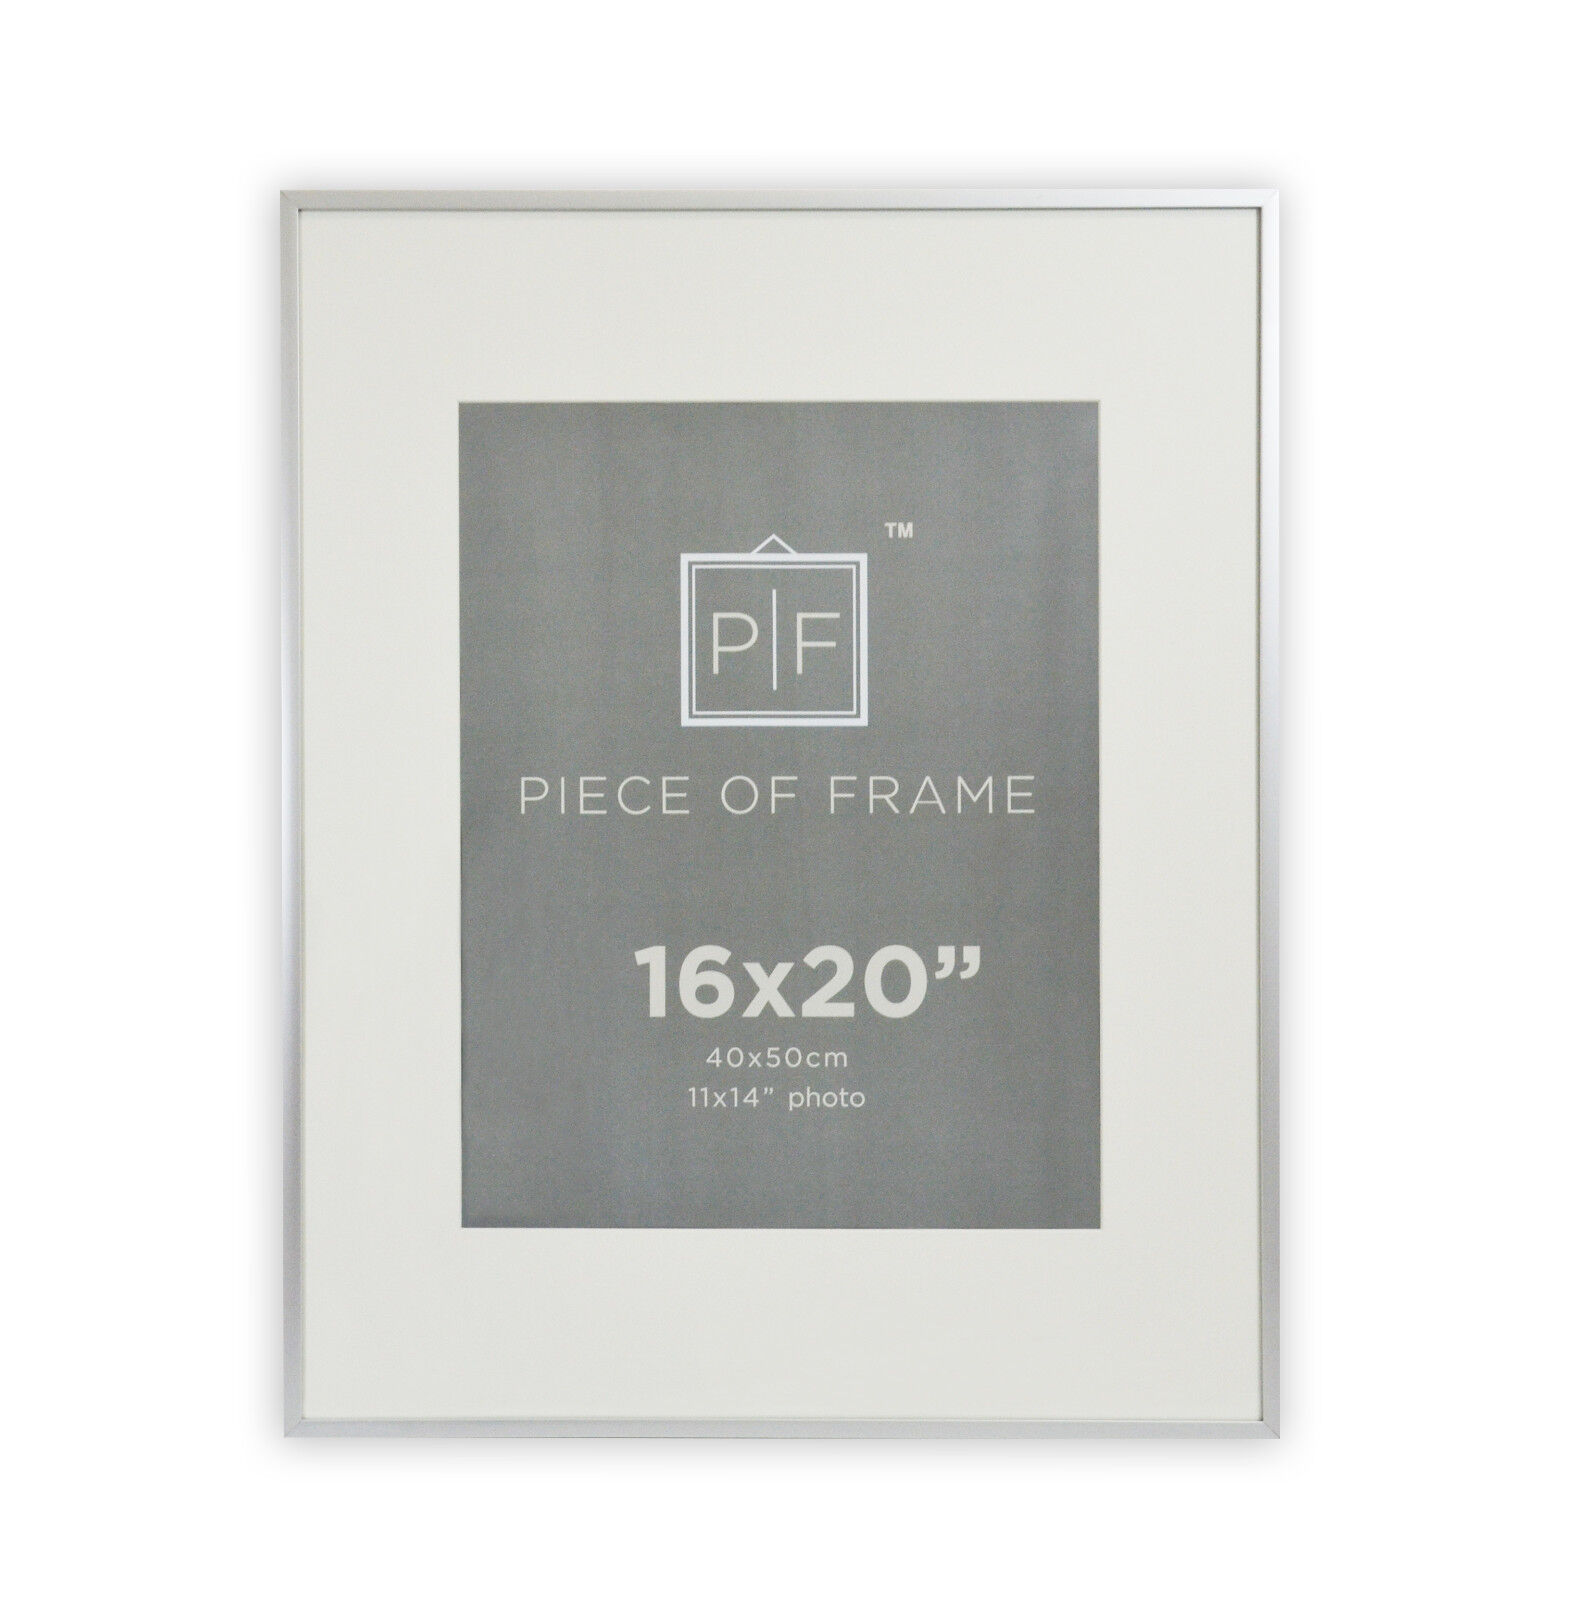 16x20 Aluminum Silver Photo Frame, with Ivory Mat for 11x14